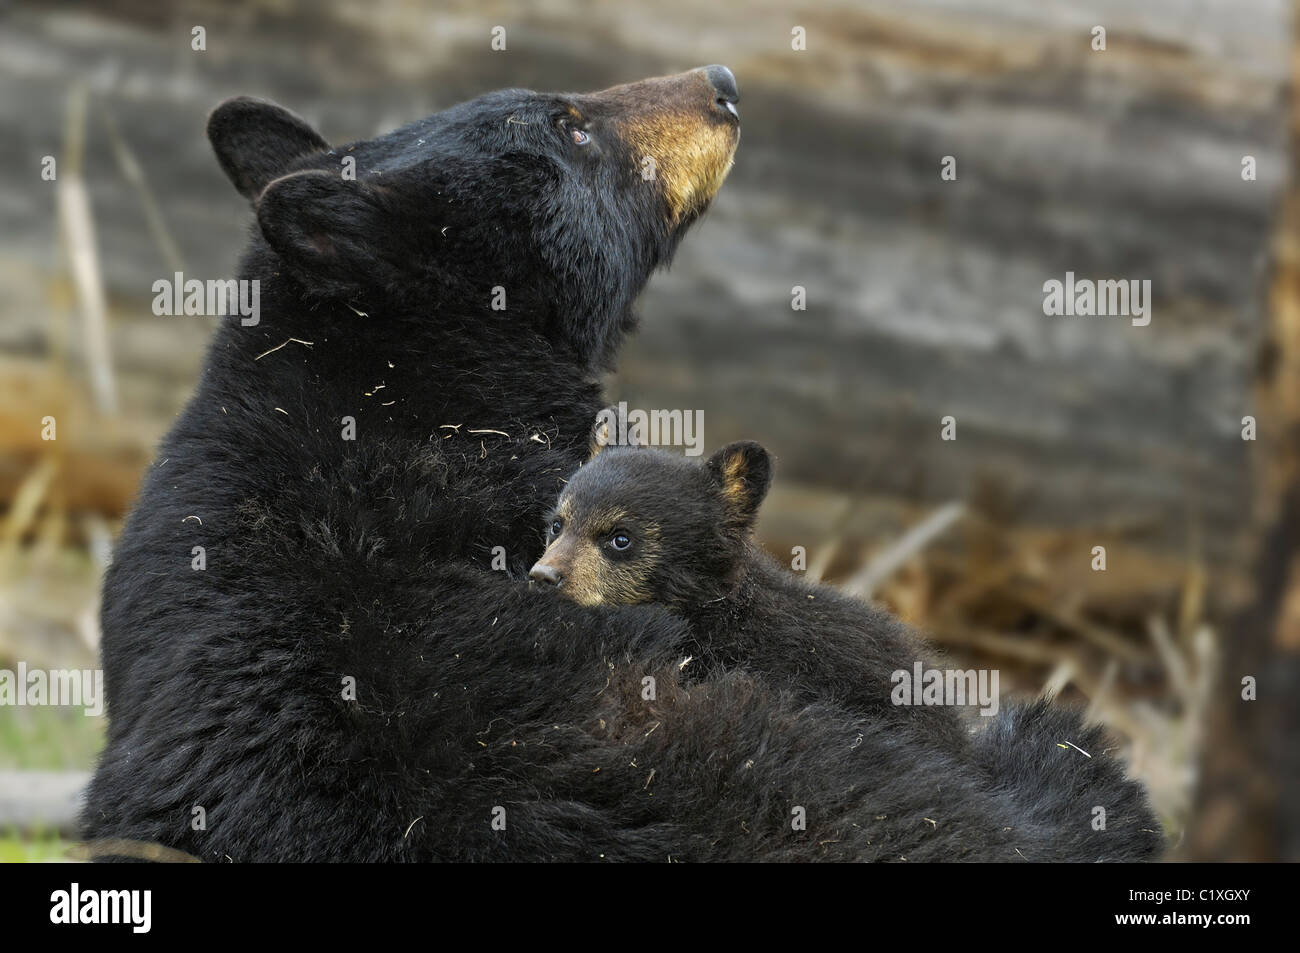 A black bear cub uses its mother as a bed - Stock Image